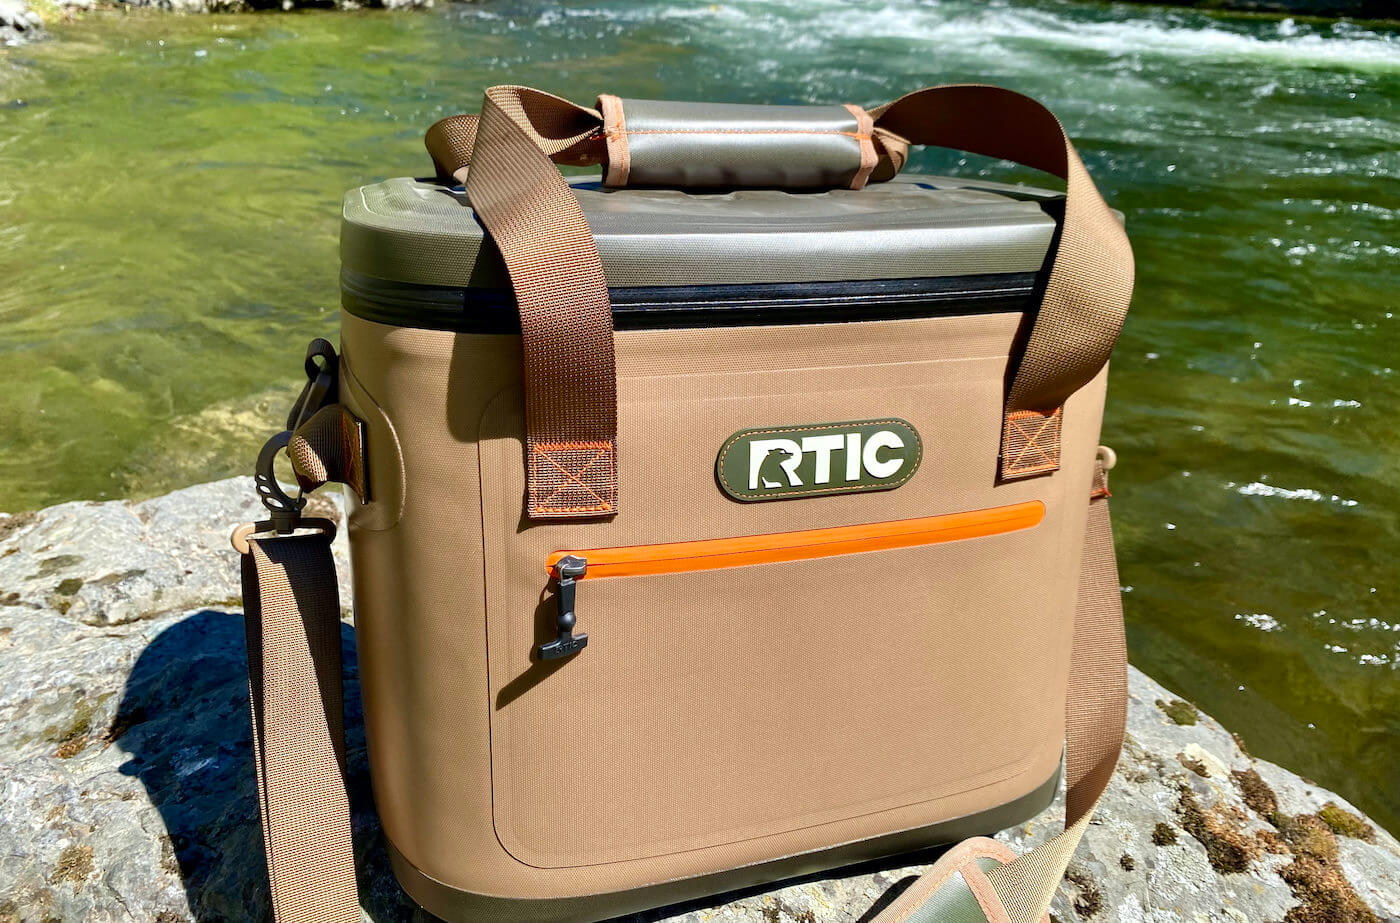 This review photo shows the RTIC Soft Pack 30 Cooler next to a river.